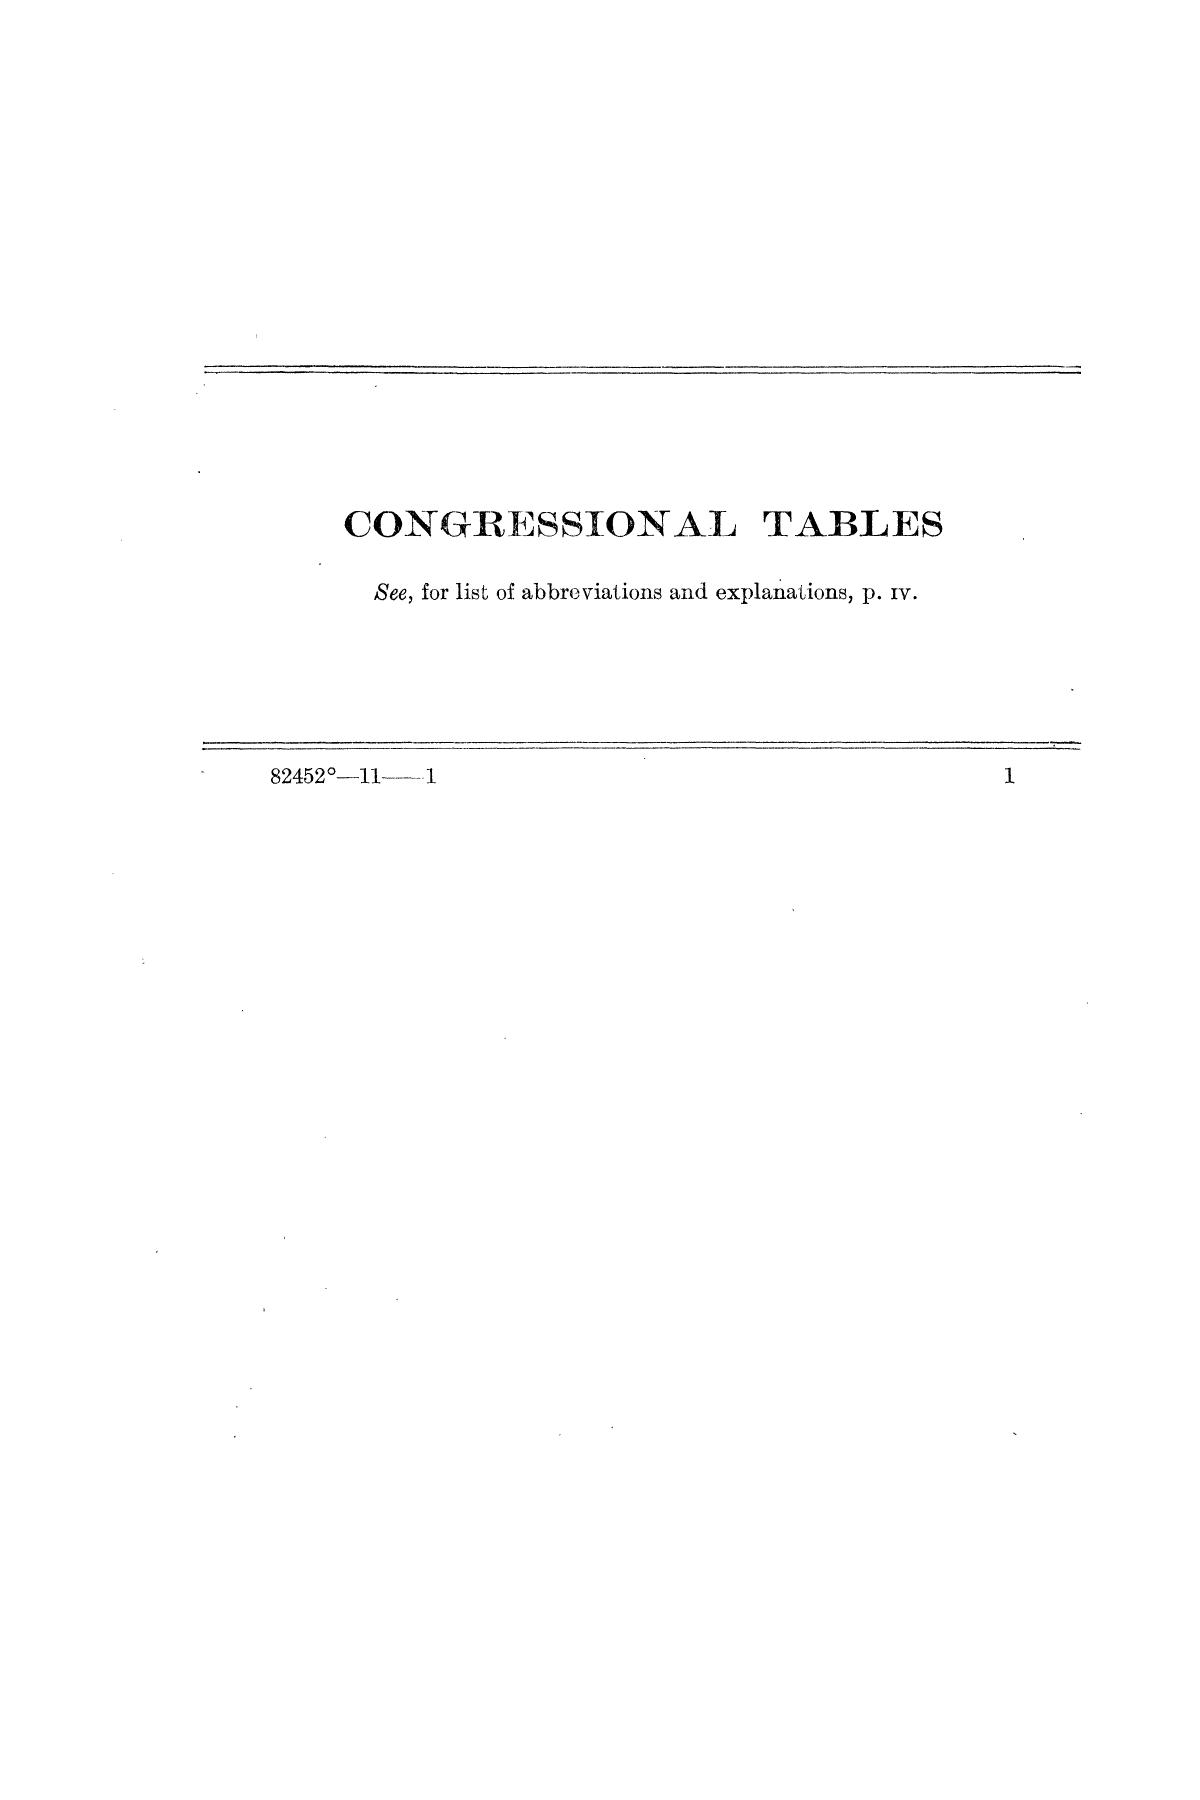 Checklist of United States Public Documents, 1789-1909, Third Edition Revised and Enlarged, Volume 1, Lists of Congressional and Departmental Publications                                                                                                      1